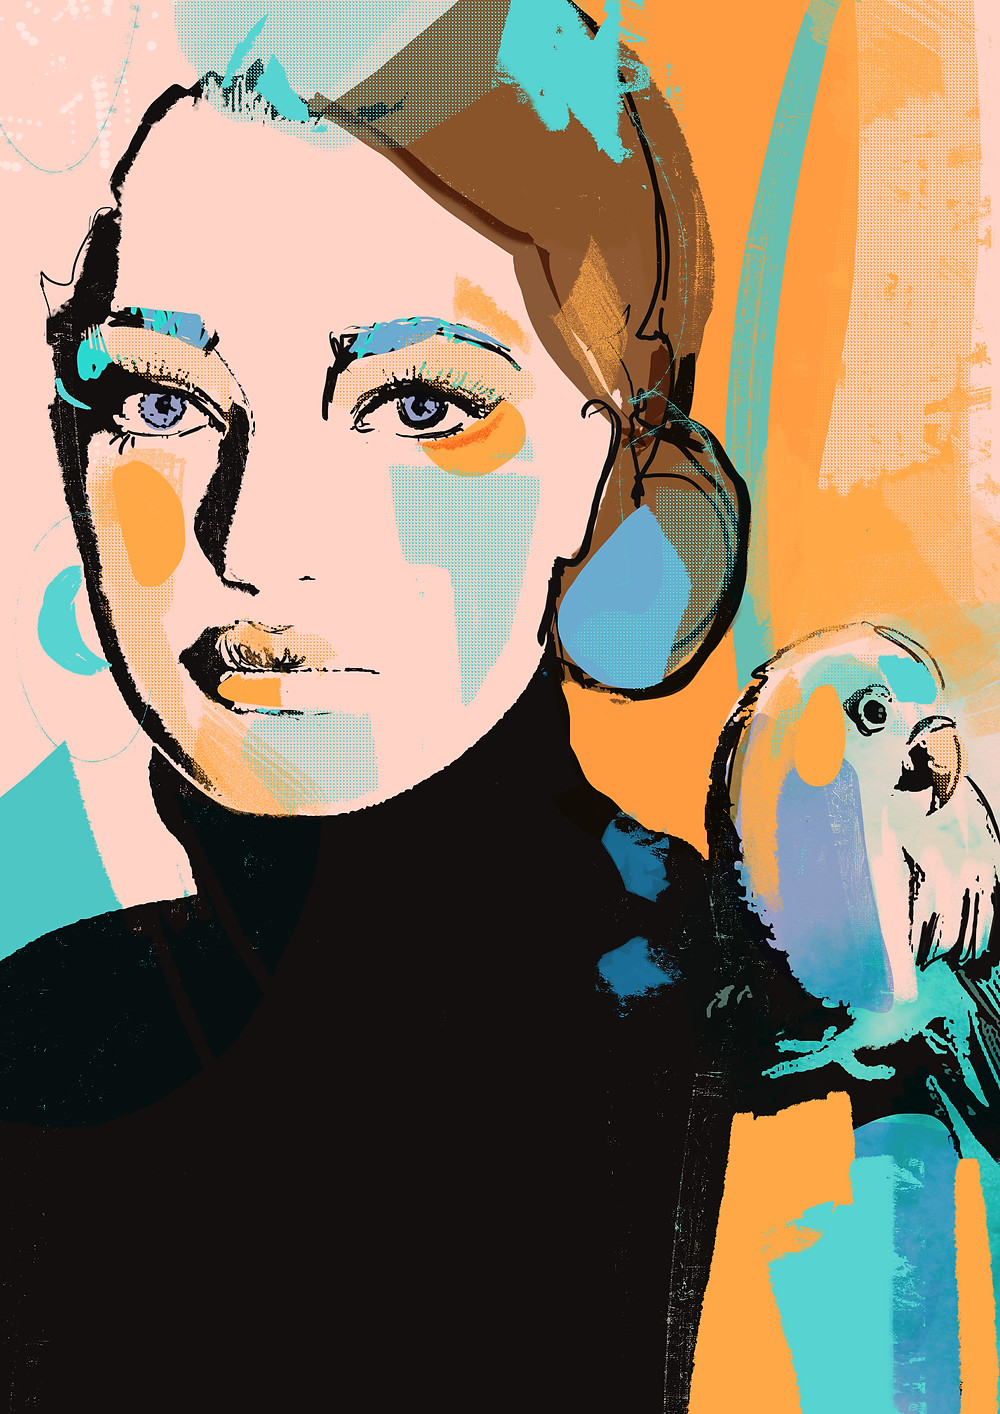 In my work I try to find out a perfect combination between abstract shapes and lines, unusual textures und bold colors.  This portrait was inspired by vibrant shades of tropical birds. A colorful parrot sitting on the girl's shoulder symbolizes here an enchanted world of dreams we always chase for.